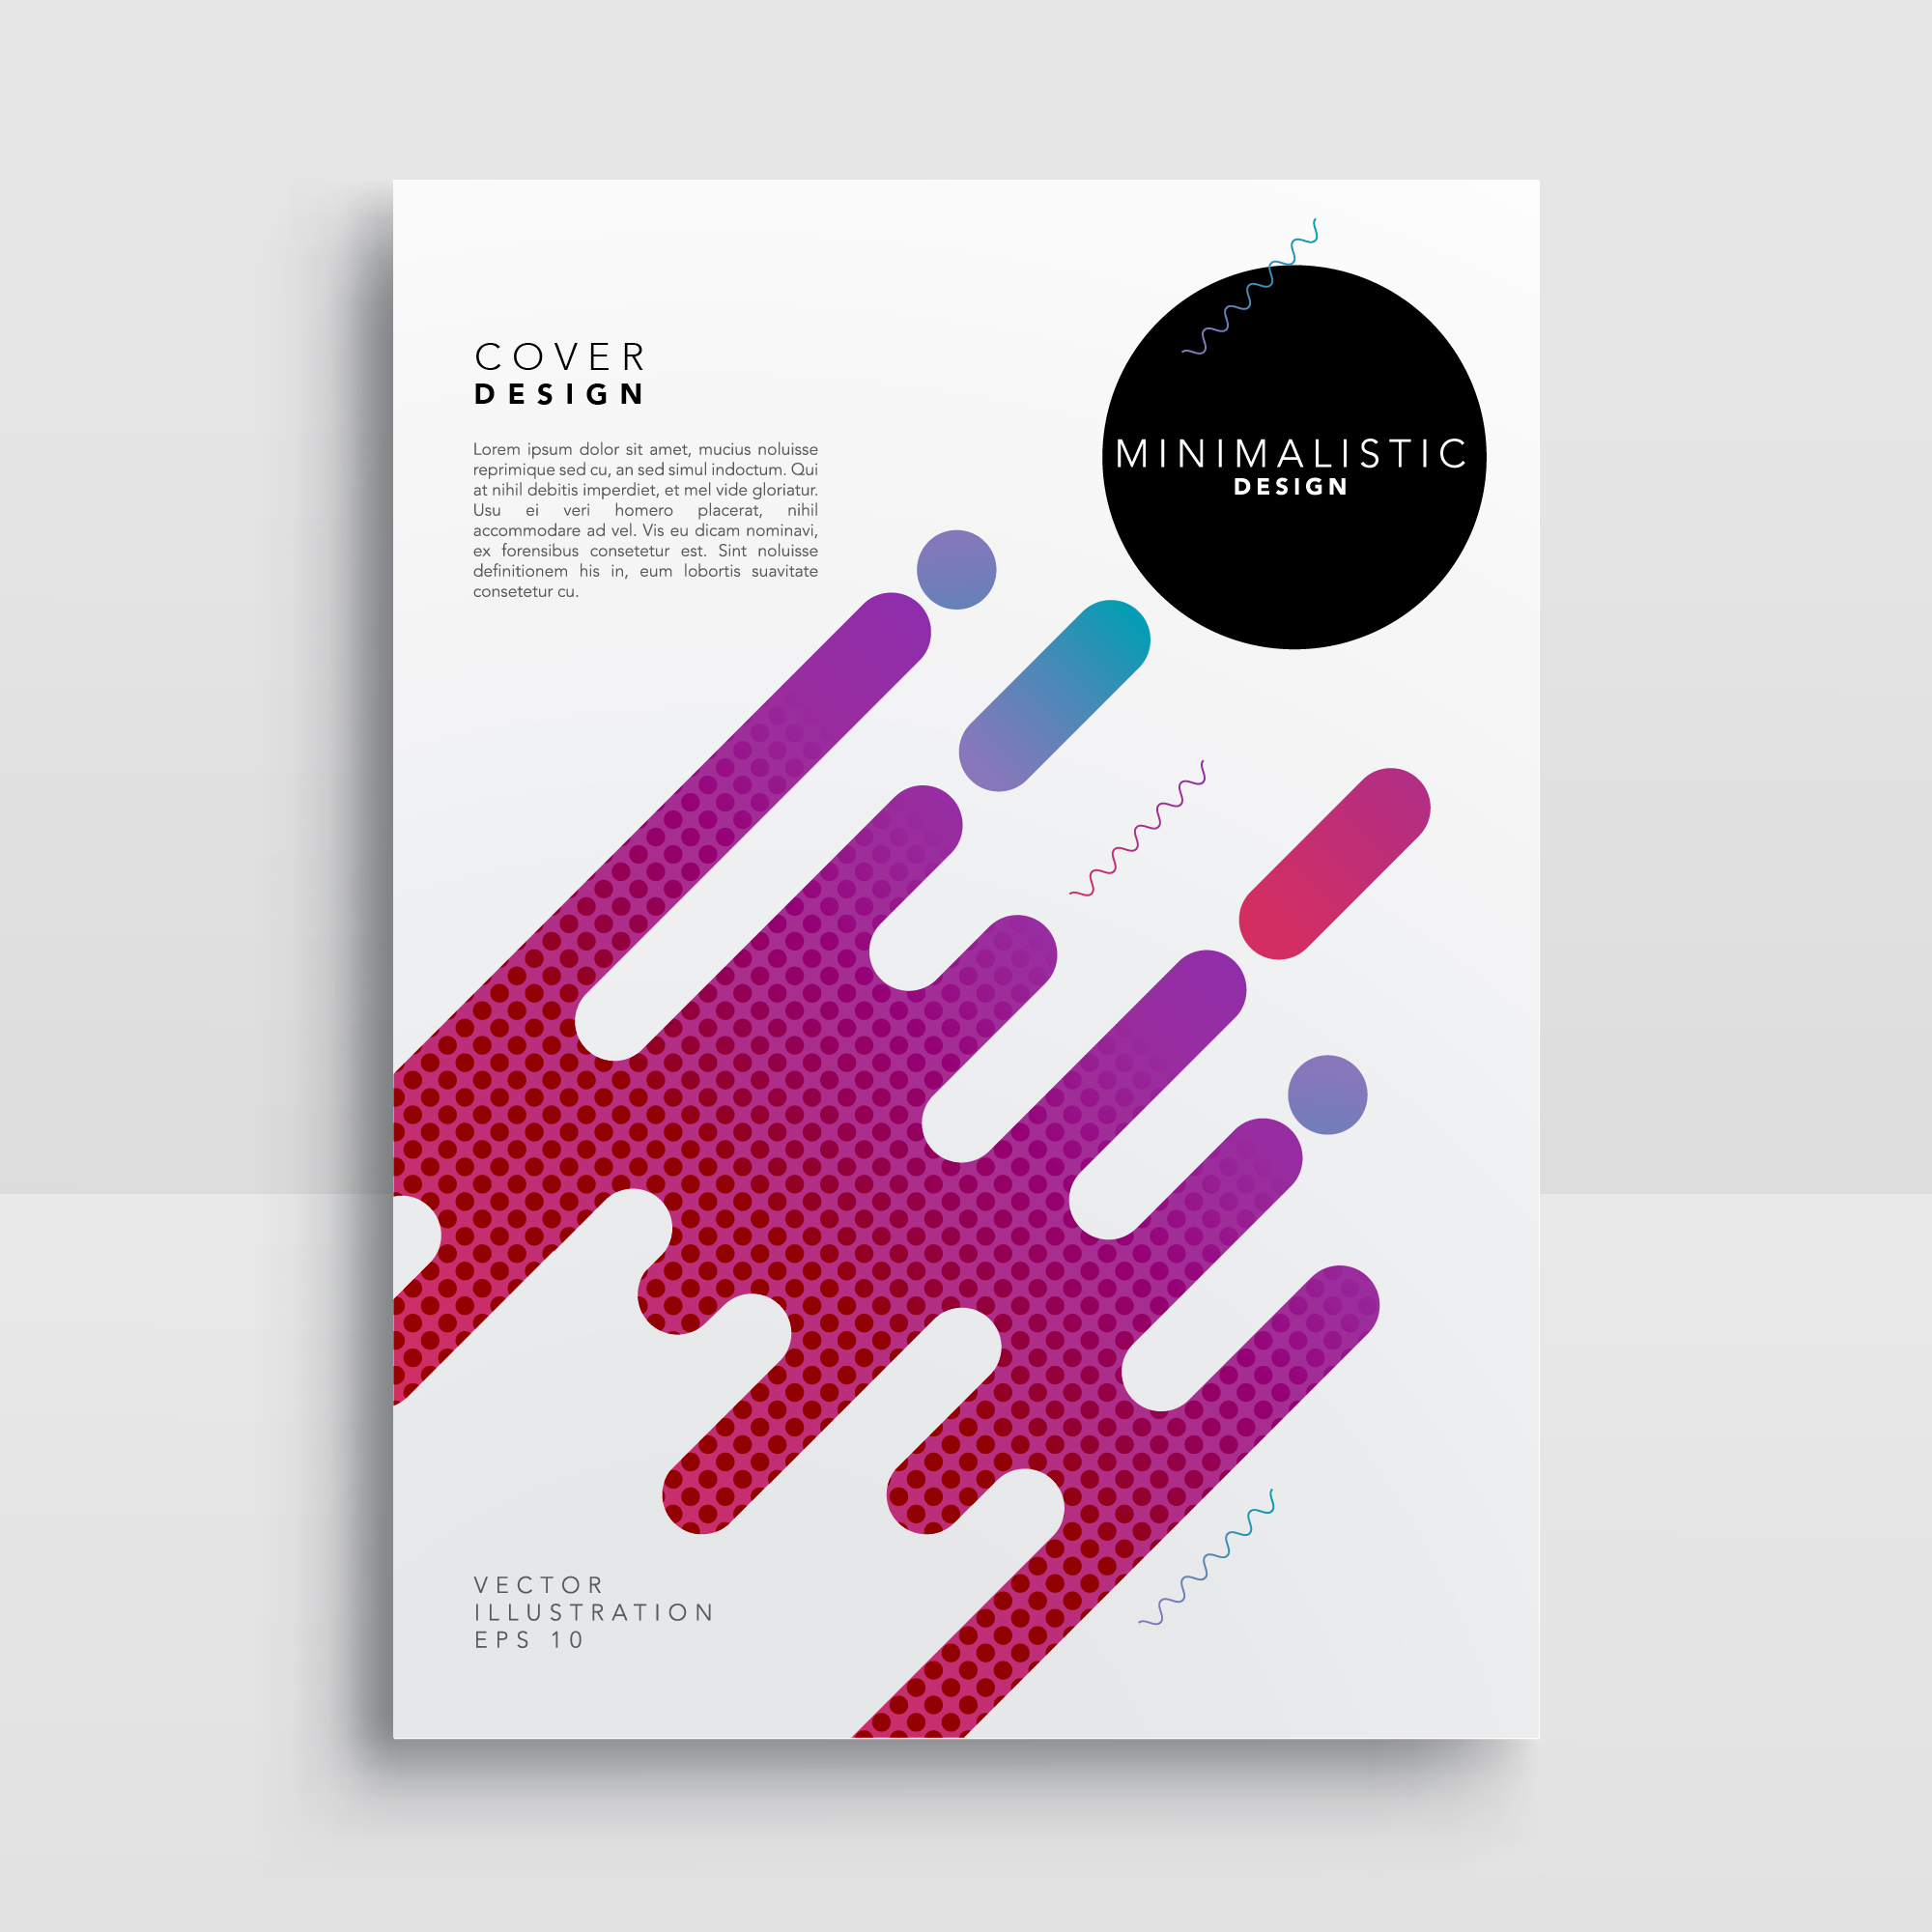 Poster with abstract shapes